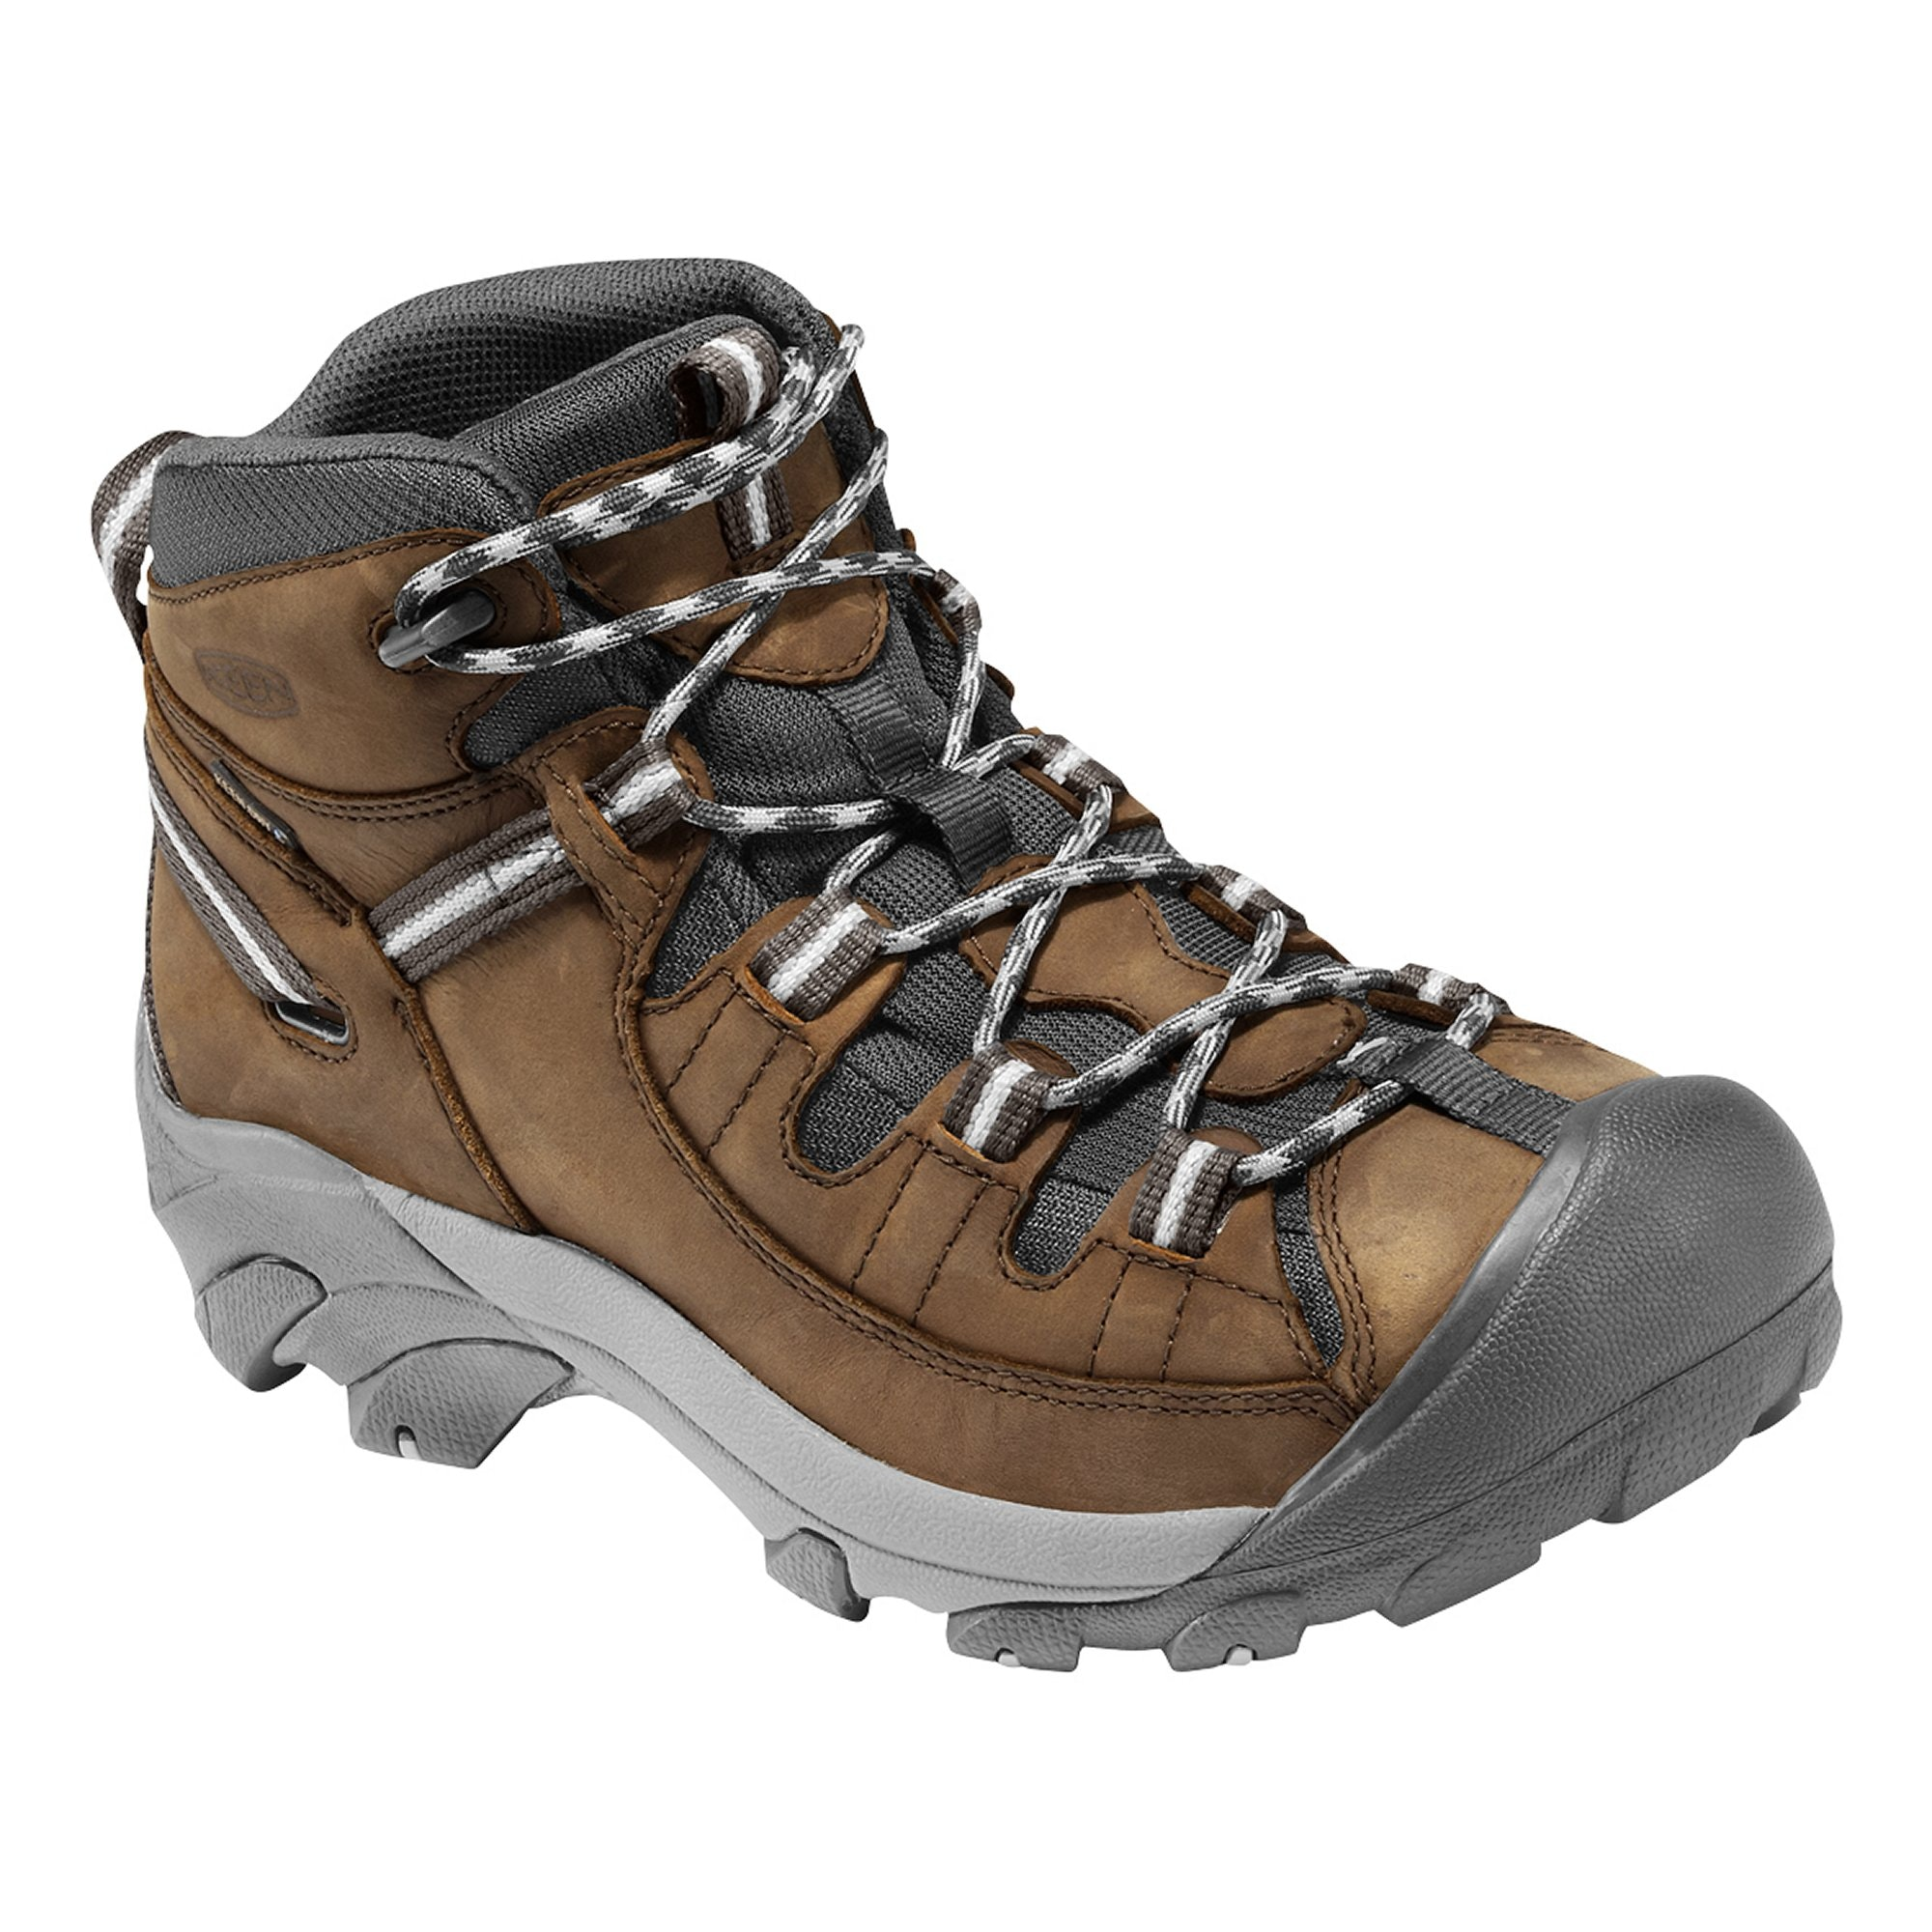 gypsum men ★ keen gypsum ii waterproof hiking boot (men) @ buy sale price mens sneakers amp athletic shoes, save 30-70% off get free no-hassle 90-day returns [keen gypsum ii waterproof hiking boot (men)] find this season s must-have styles from top brands order online today.